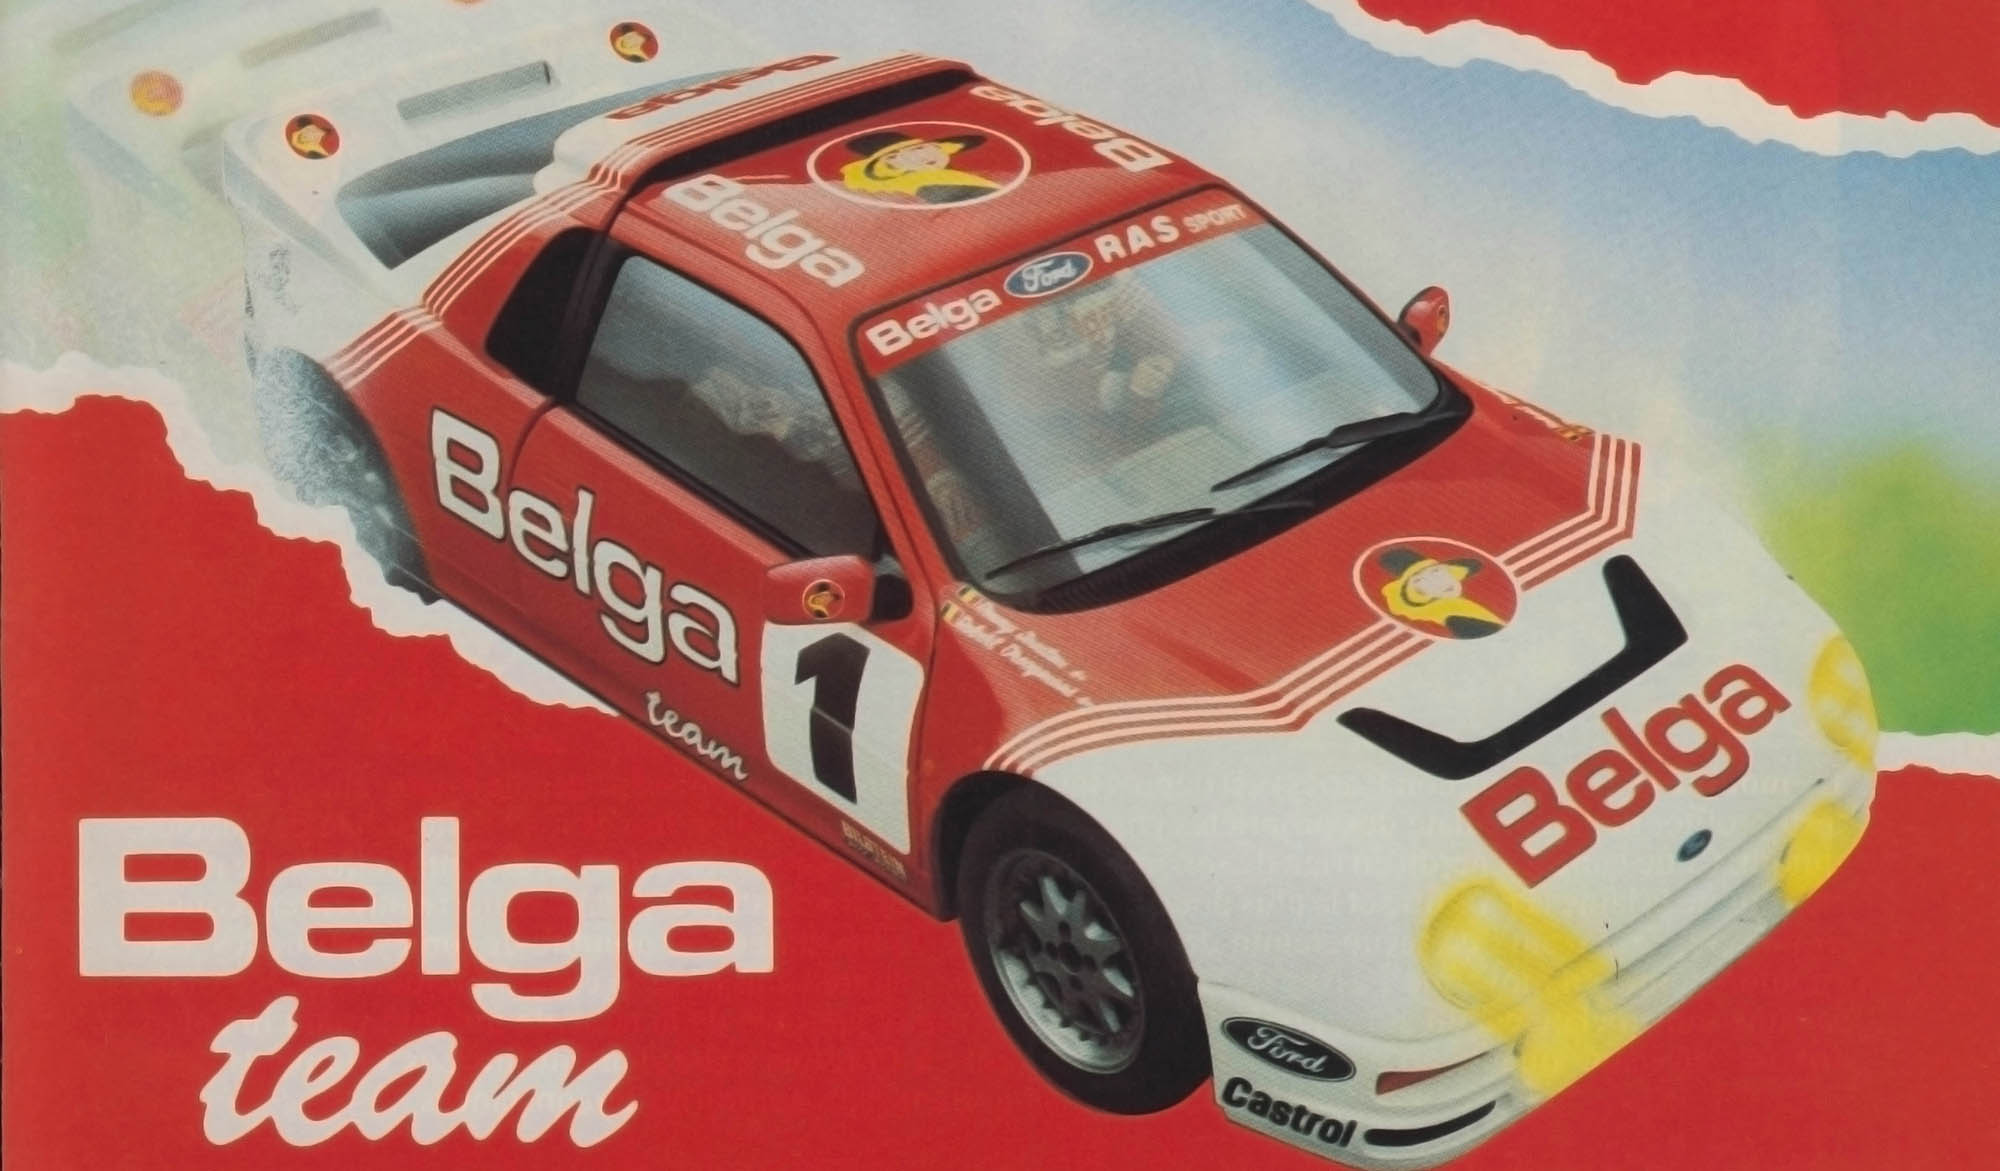 Belga Team – Circuit des Ardennes Advertisement 1986